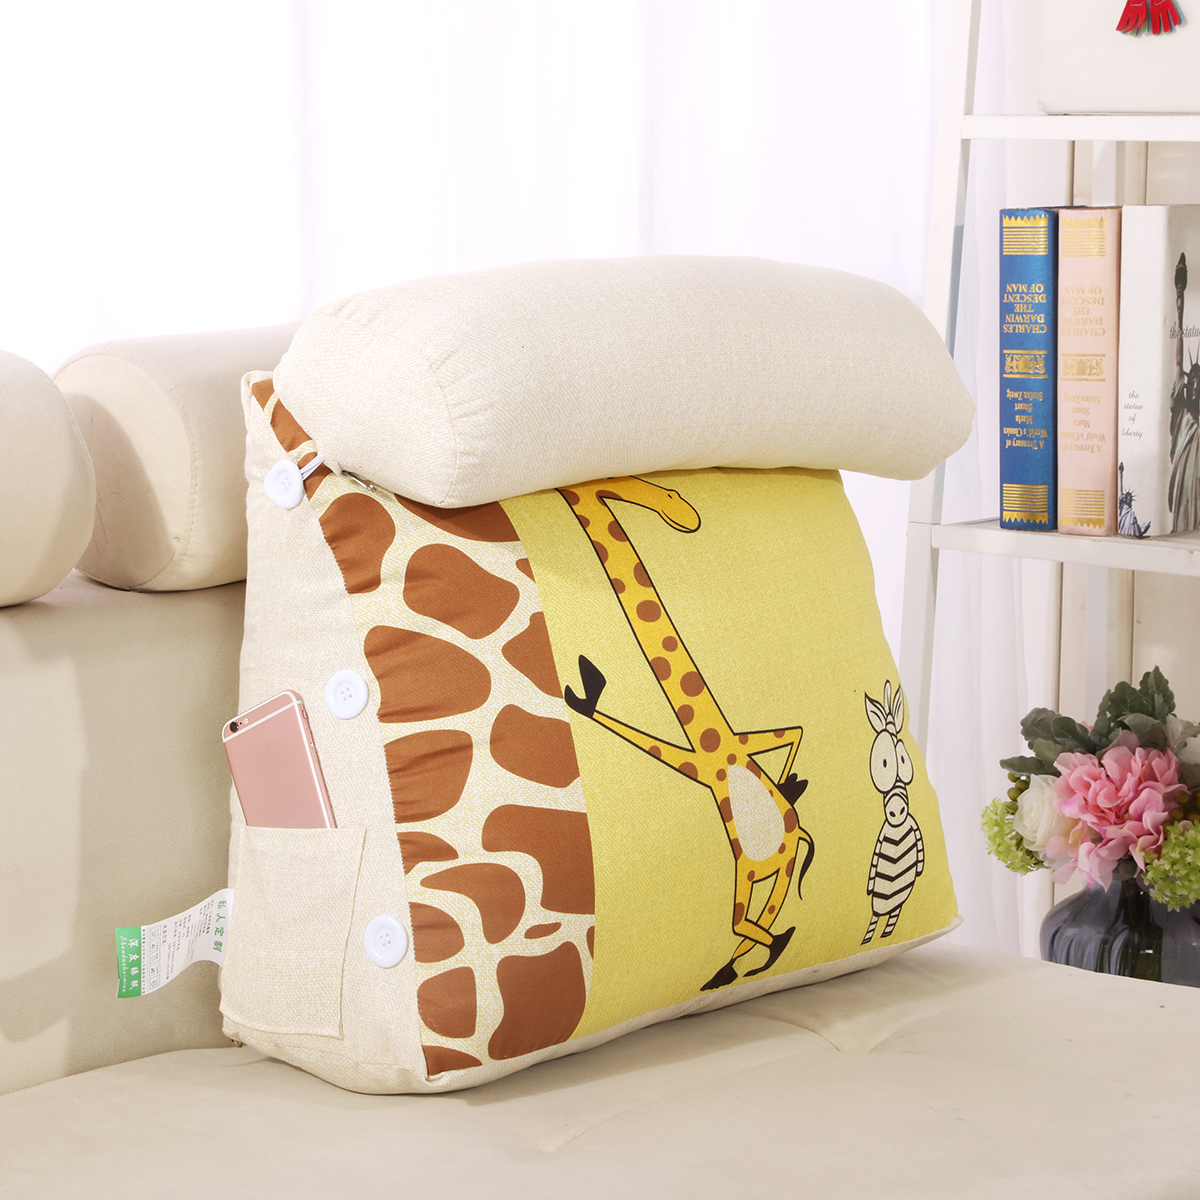 cartoon wedge shaped reading tv pillow with adjustable neck pillow triangle back cushion pillow for sofa bed office chair rest pillow back support